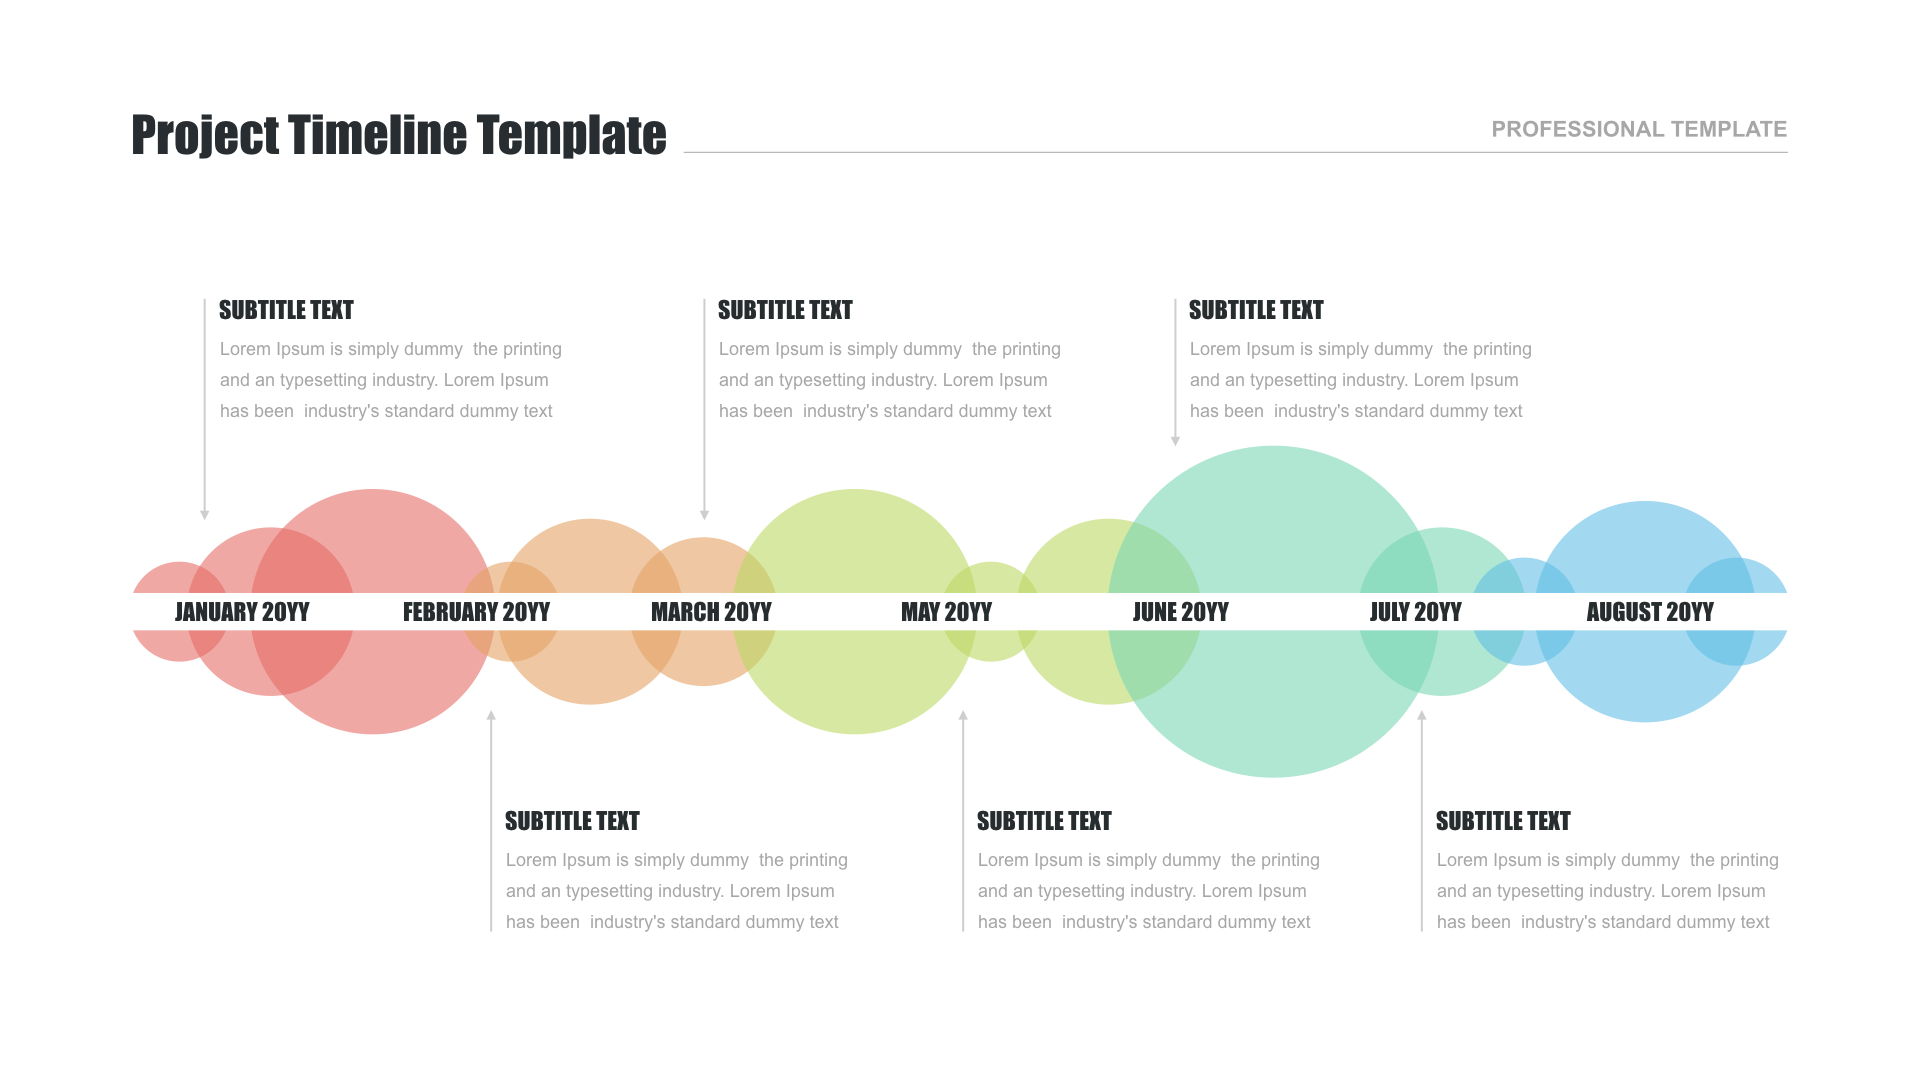 Free timeline templates for PowerPoint